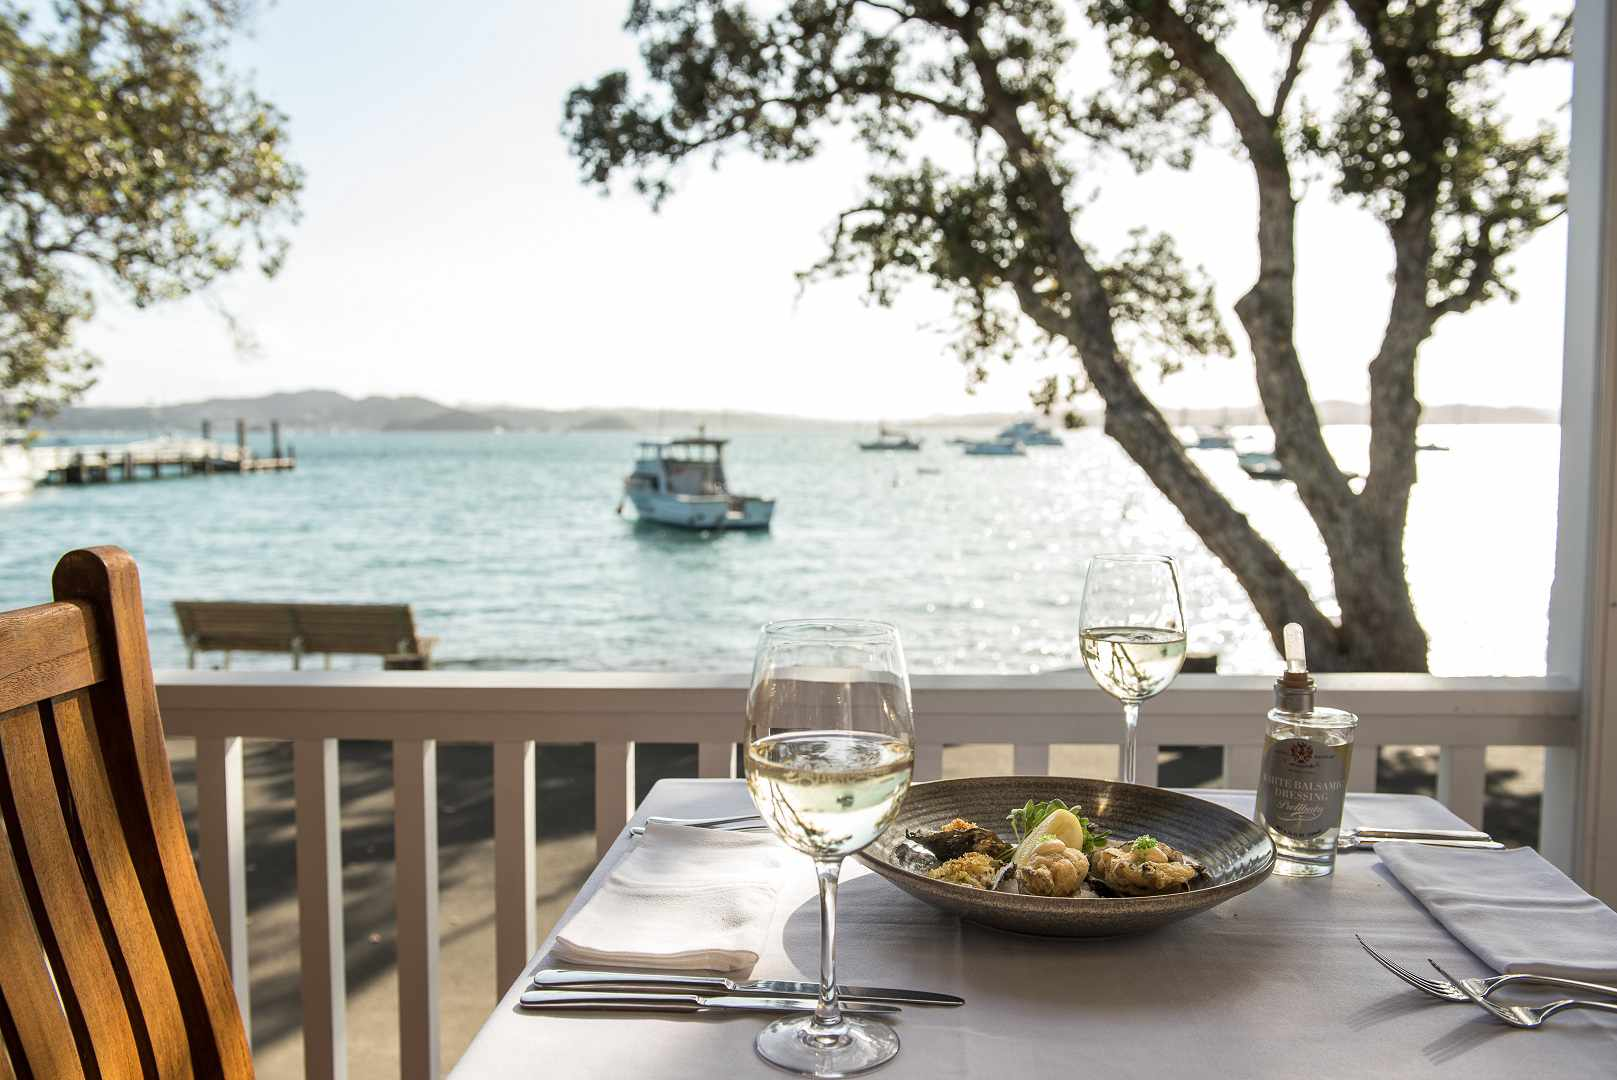 Two glasses of white wine and a plate of clame on a set table with views of boats on the water in the background. Take at Duke of Marlborough Hotel